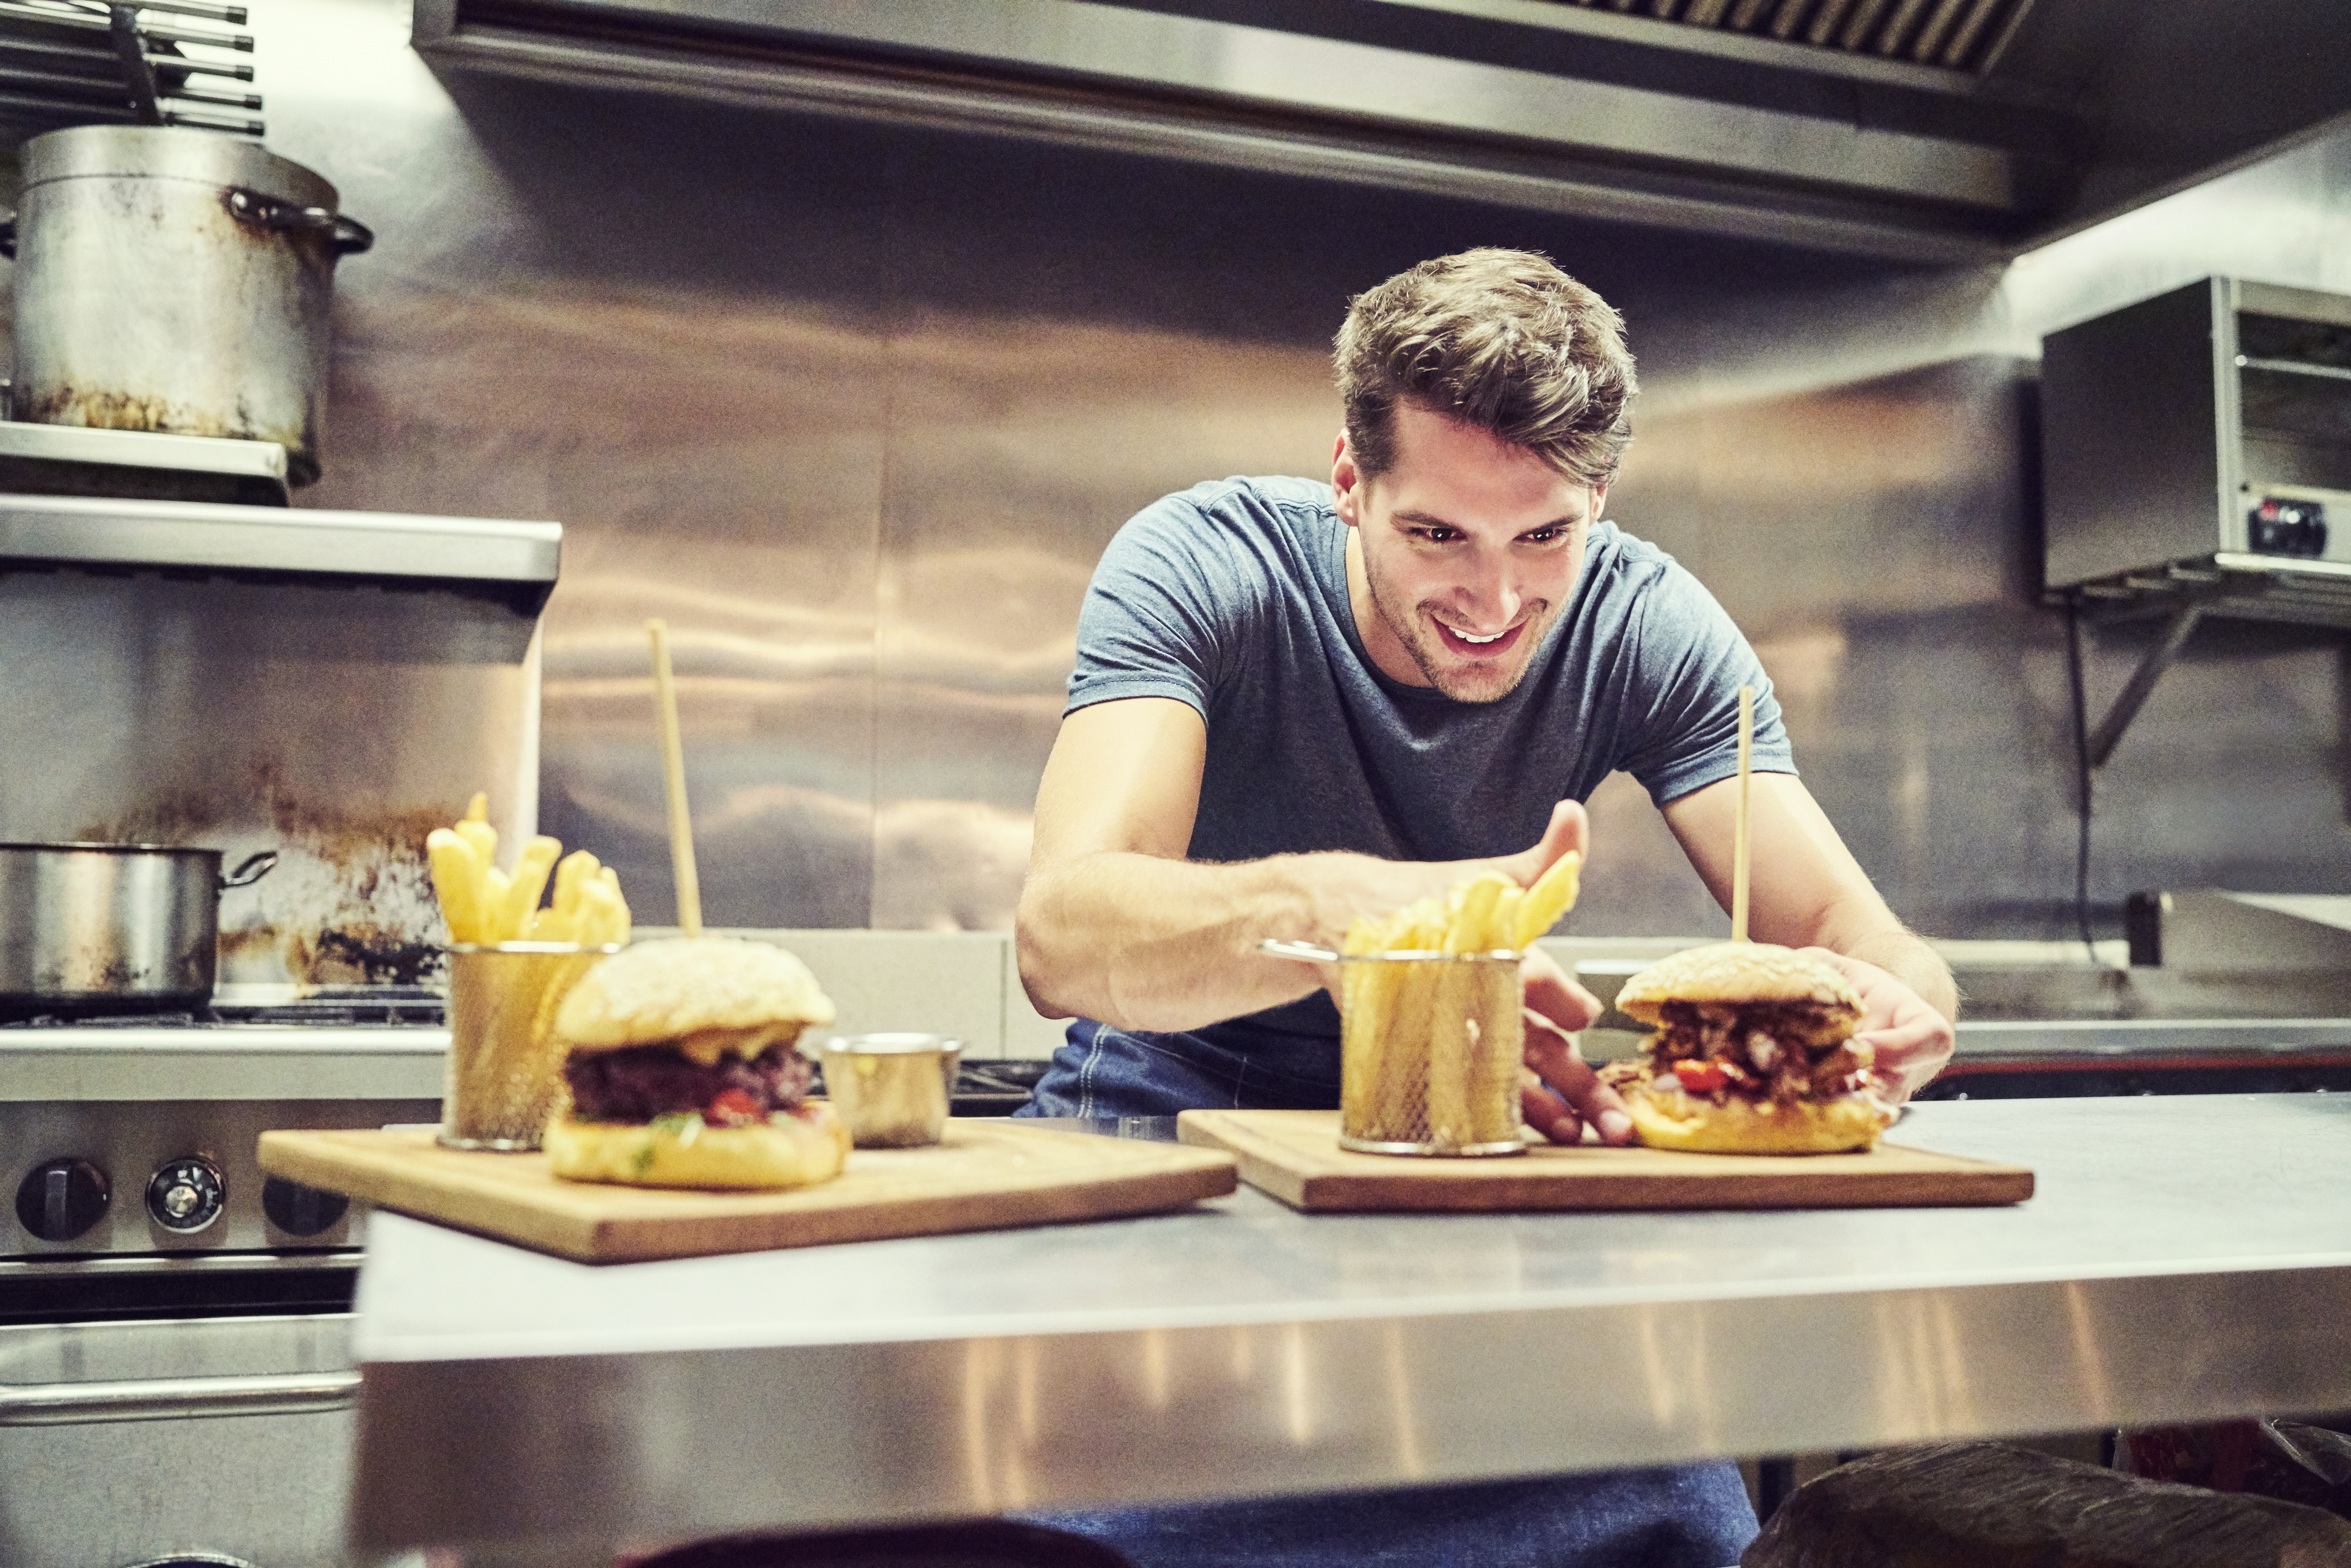 Happy-chef-arranging-burger-and-French-fries-641732094_3867x2579 (1)-1